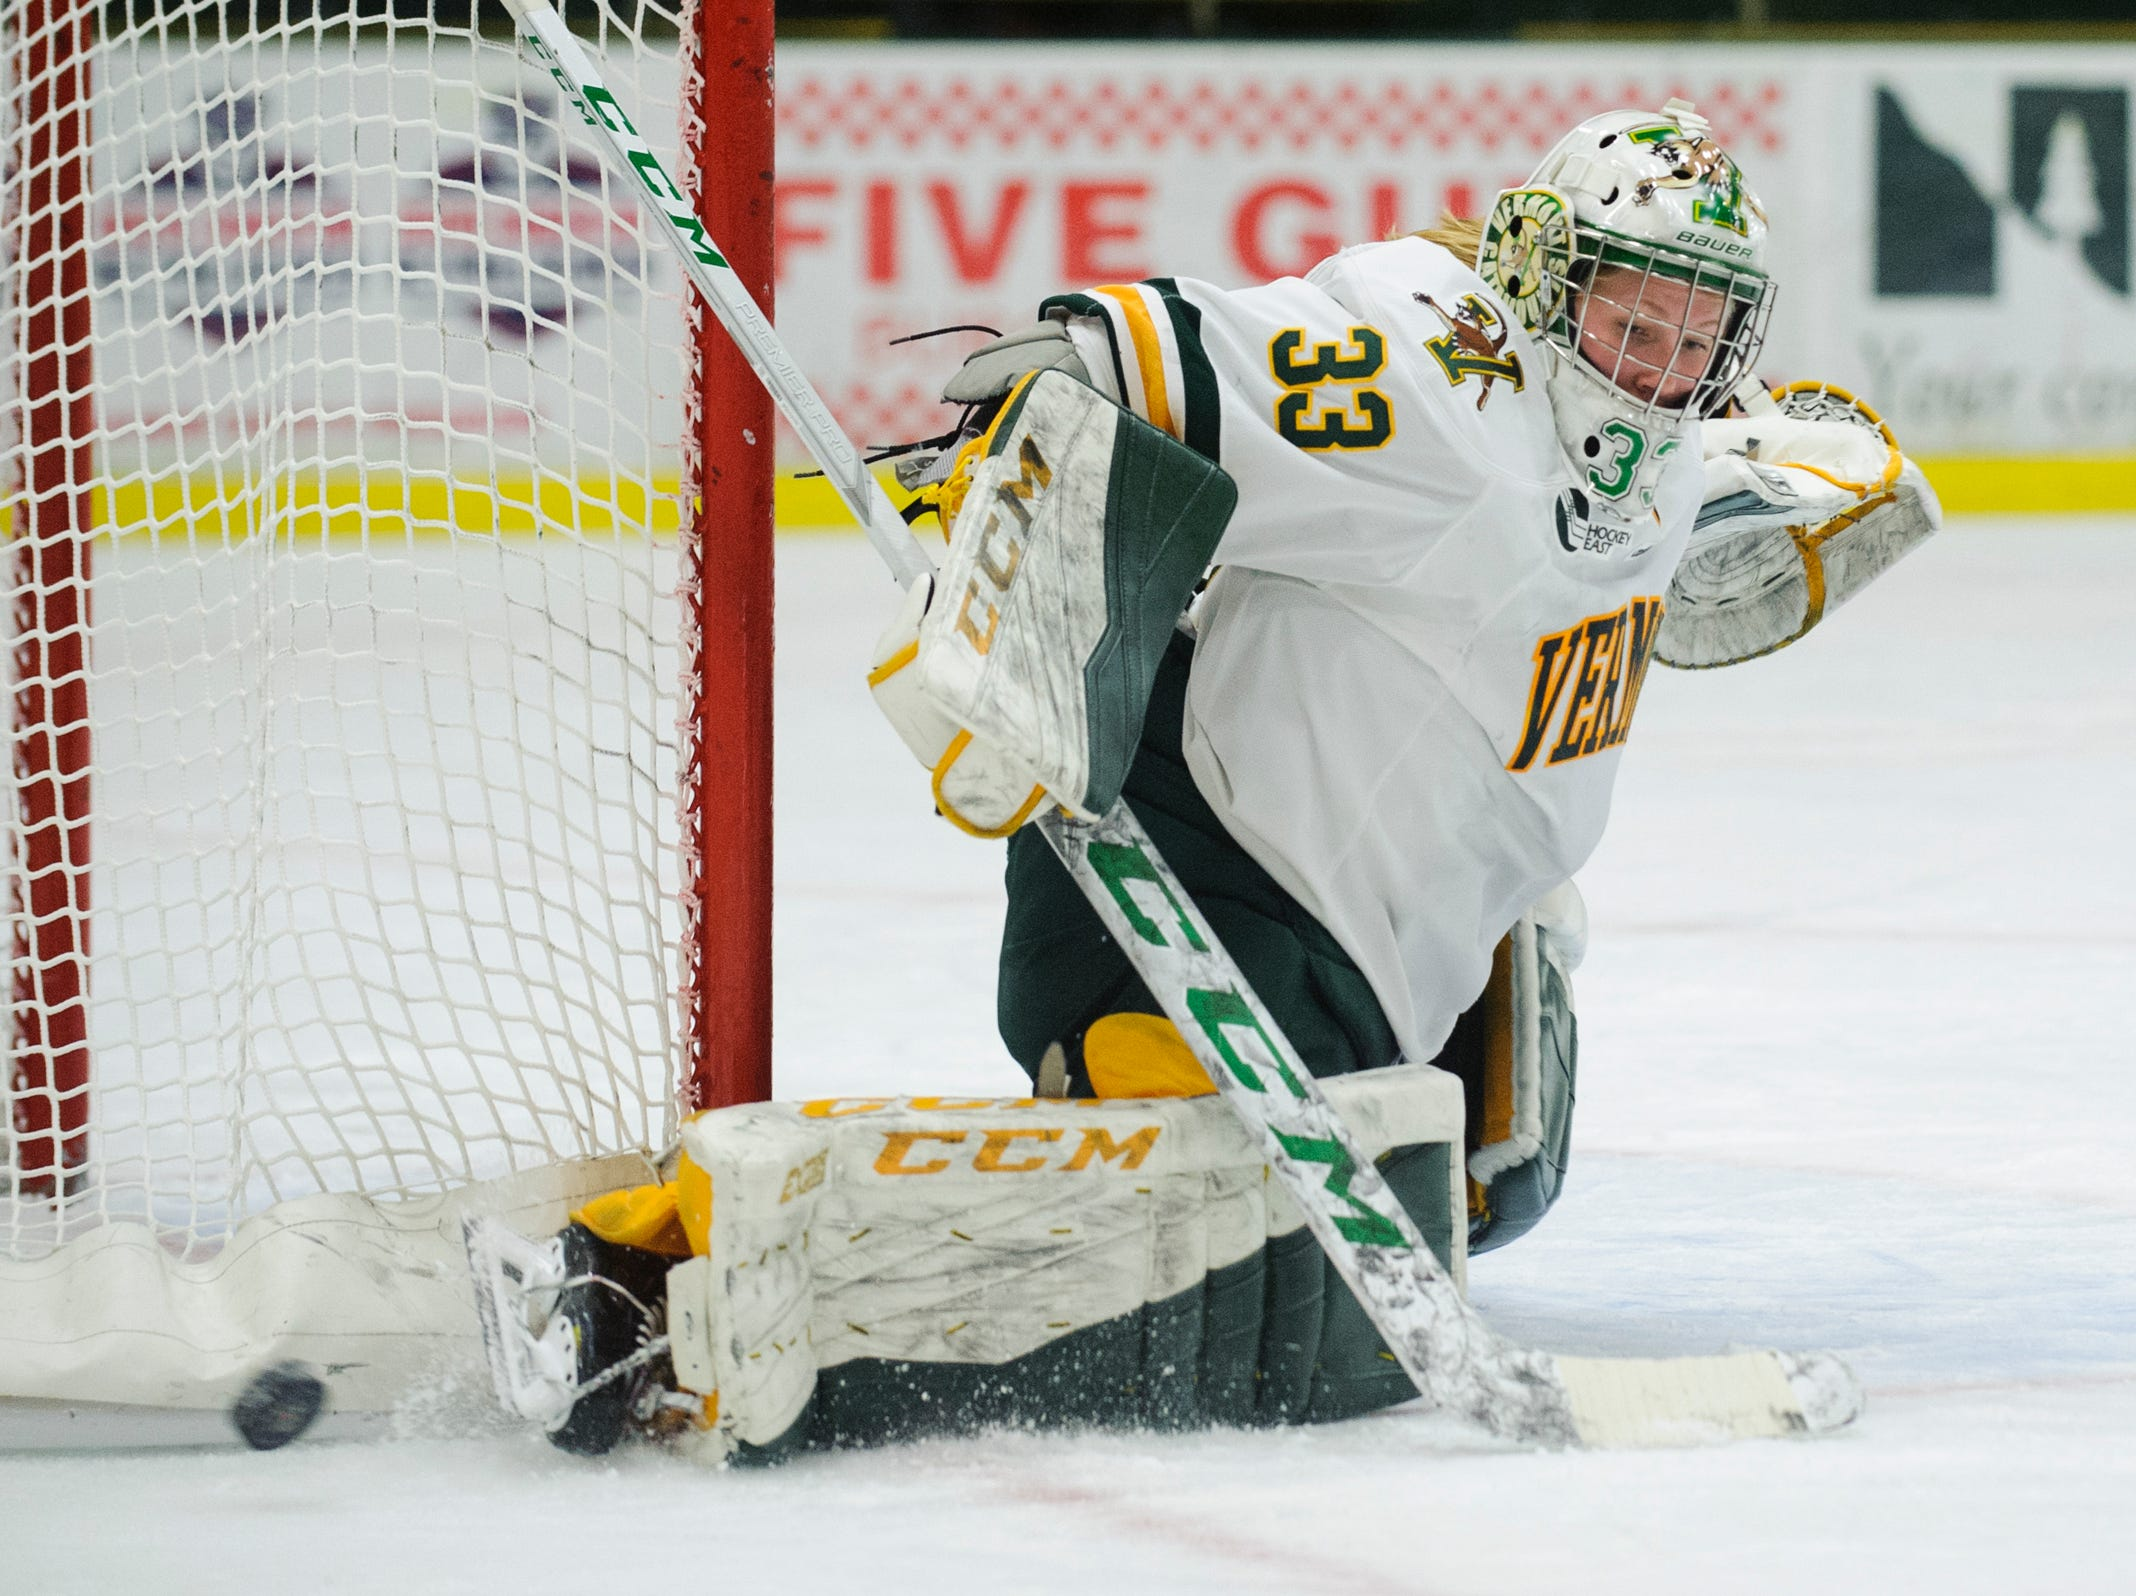 Vermont goalie Melissa Black (33) makes a save during the women's hockey game between the Syracuse Orange and the Vermont Catamounts at Gutterson Field House on Friday night November 23, 2018 in Burlington.